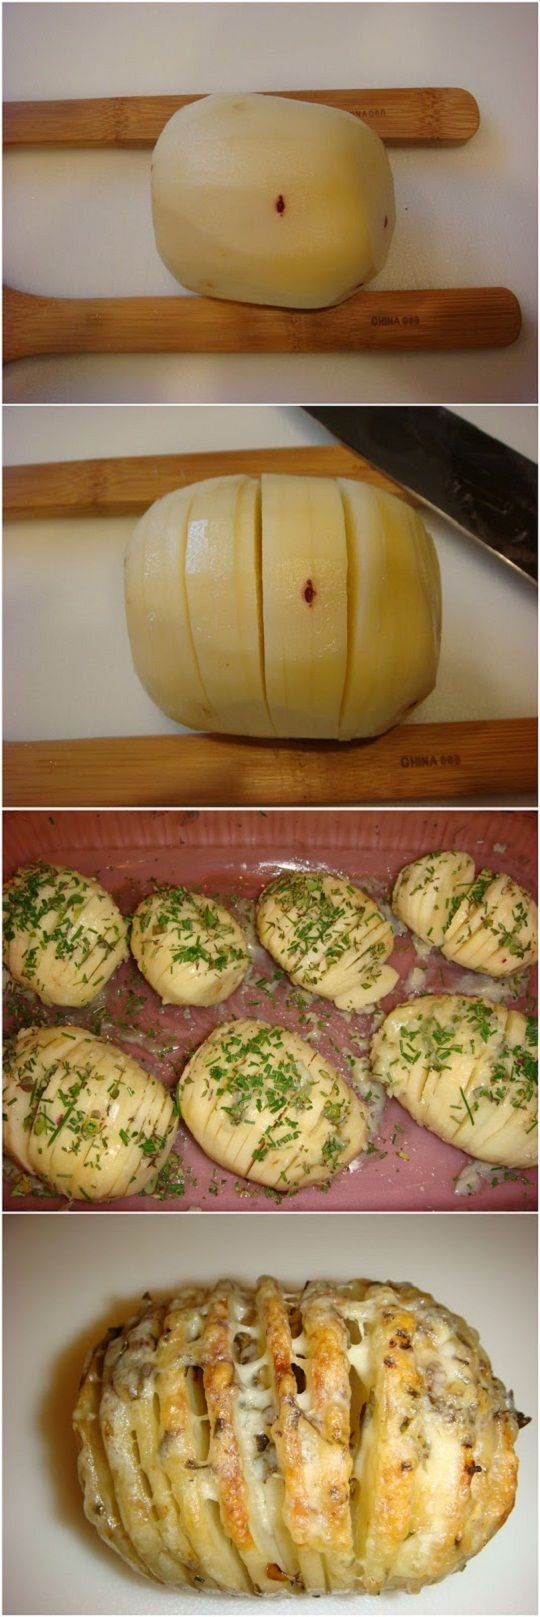 Sliced, Baked Potatoes w/ Herbs & Cheese- 40 minutes and then another 10 with the cheese on top and the potatoes a little crunchy